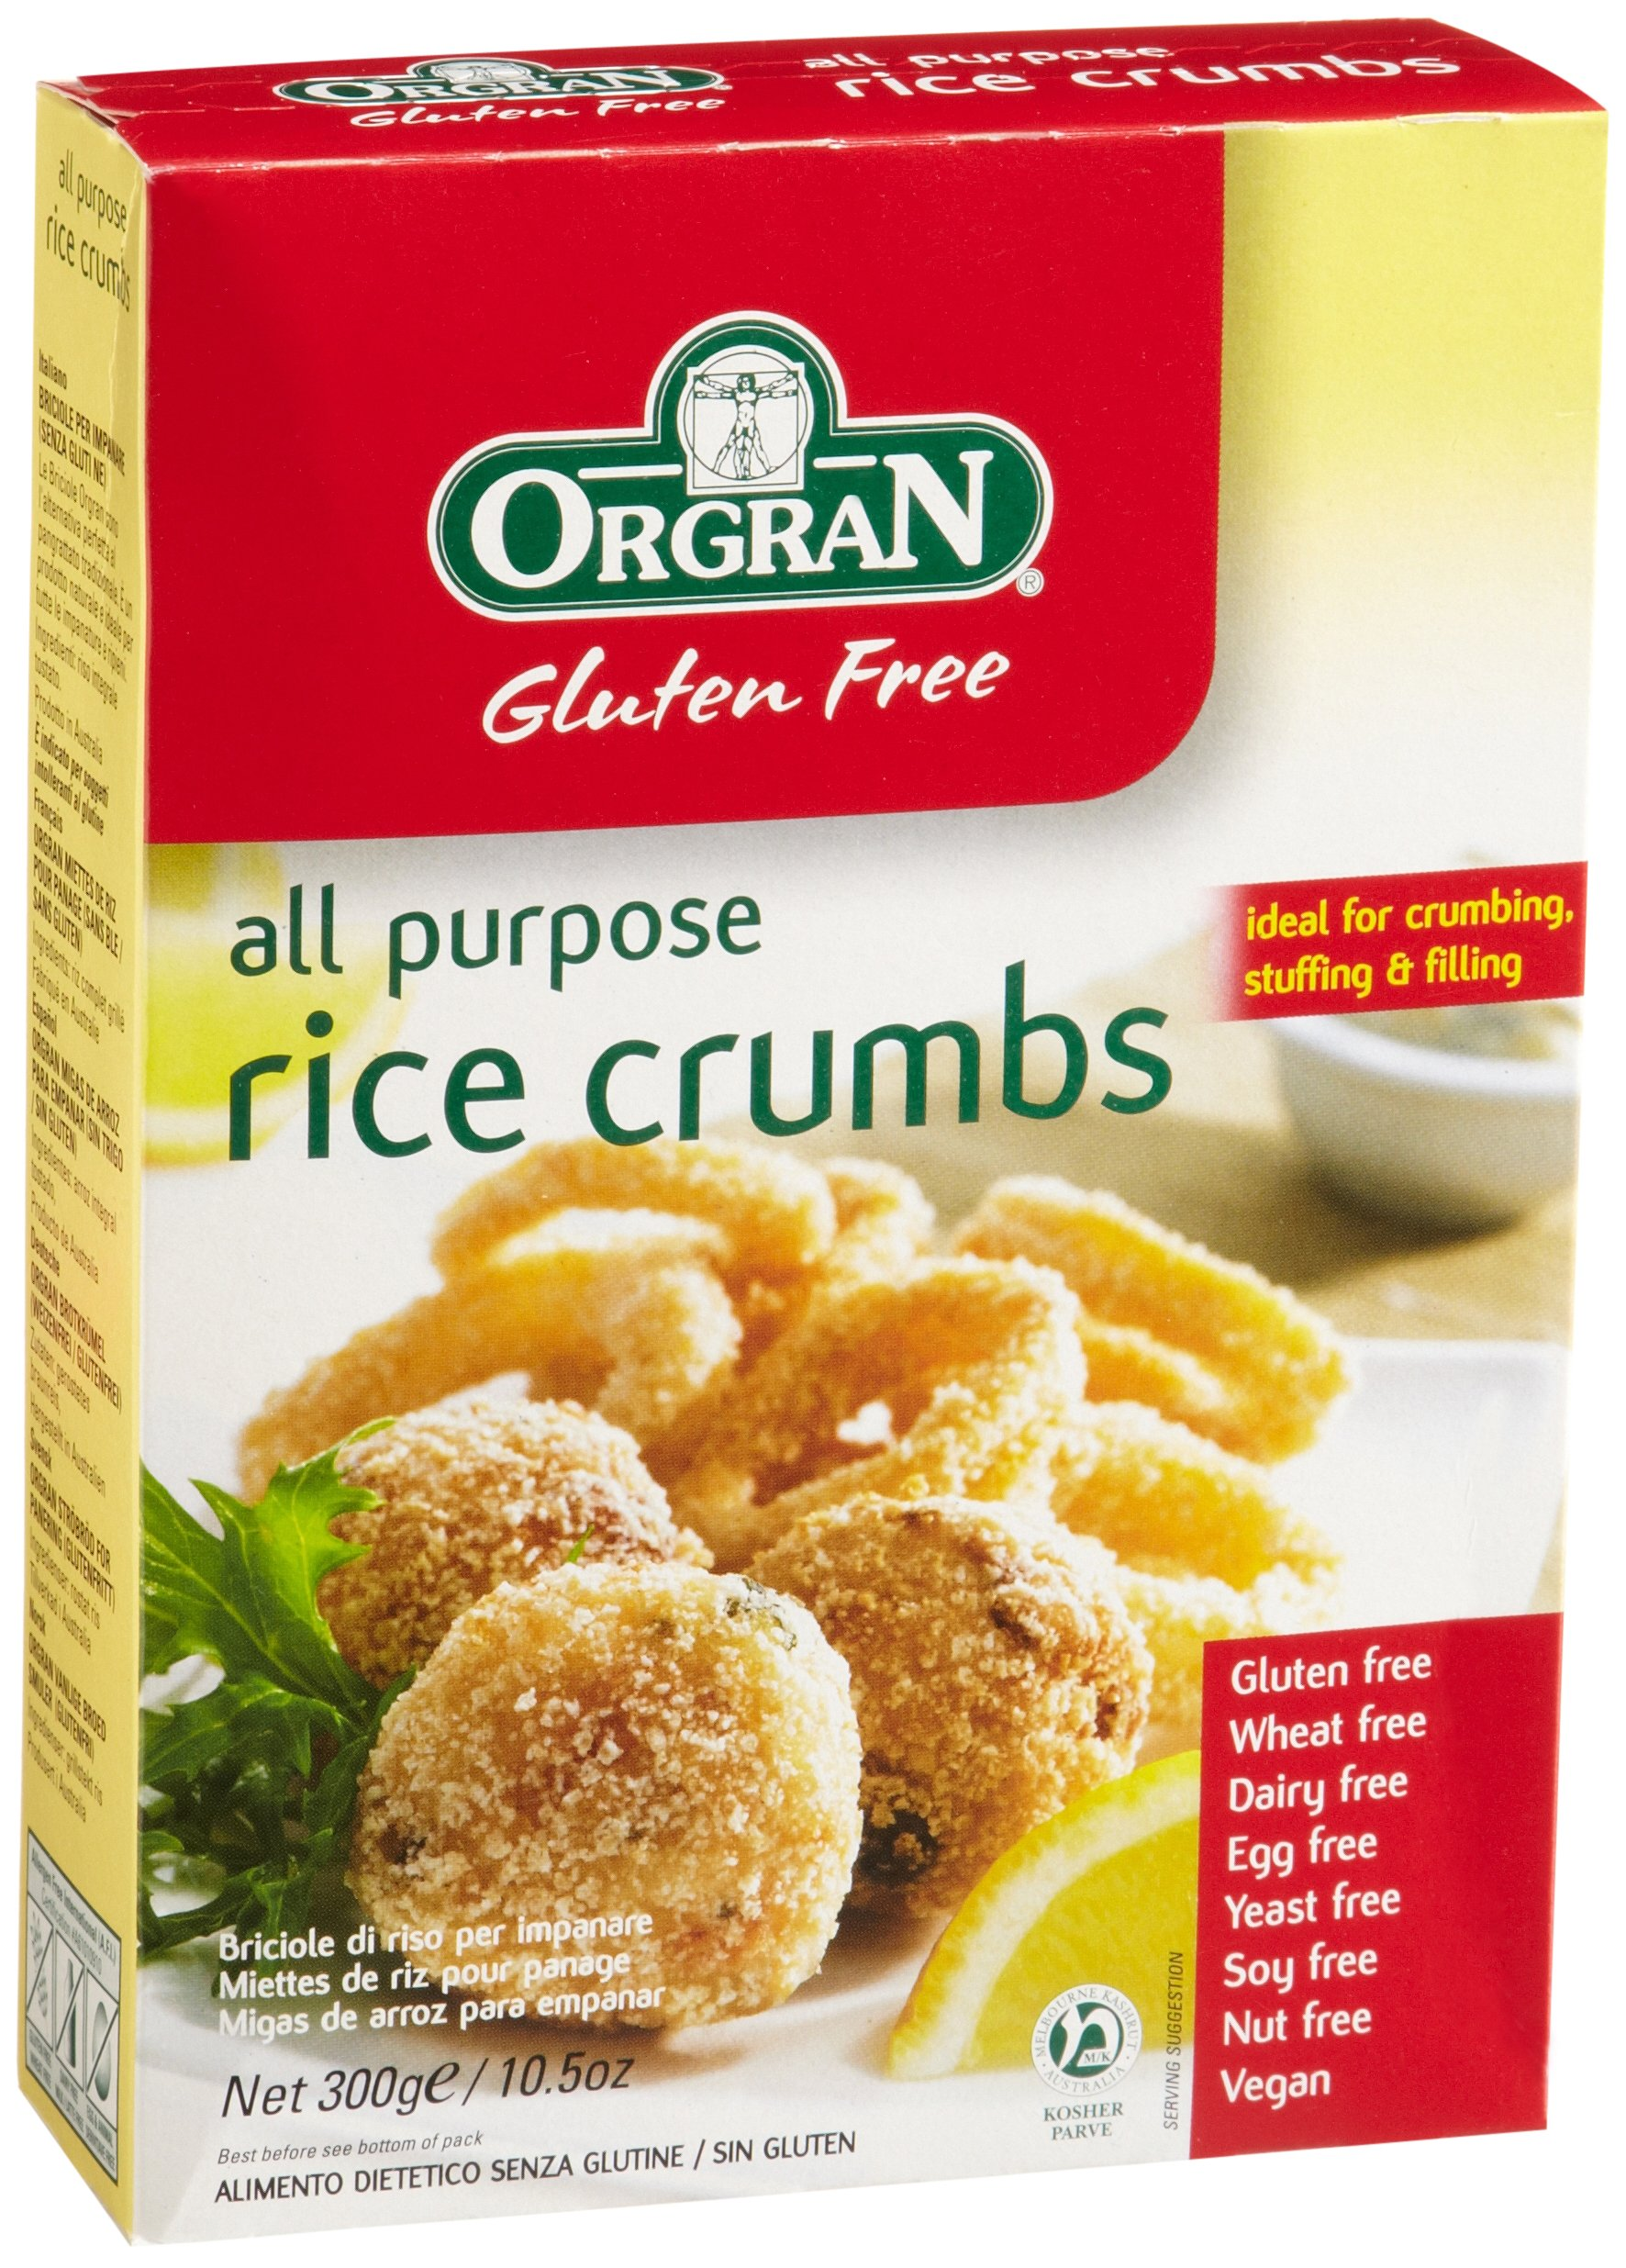 OrgraN All Purpose Rice Crumbs, 10.5-Ounce Boxes (Pack of 8) by Orgran (Image #2)